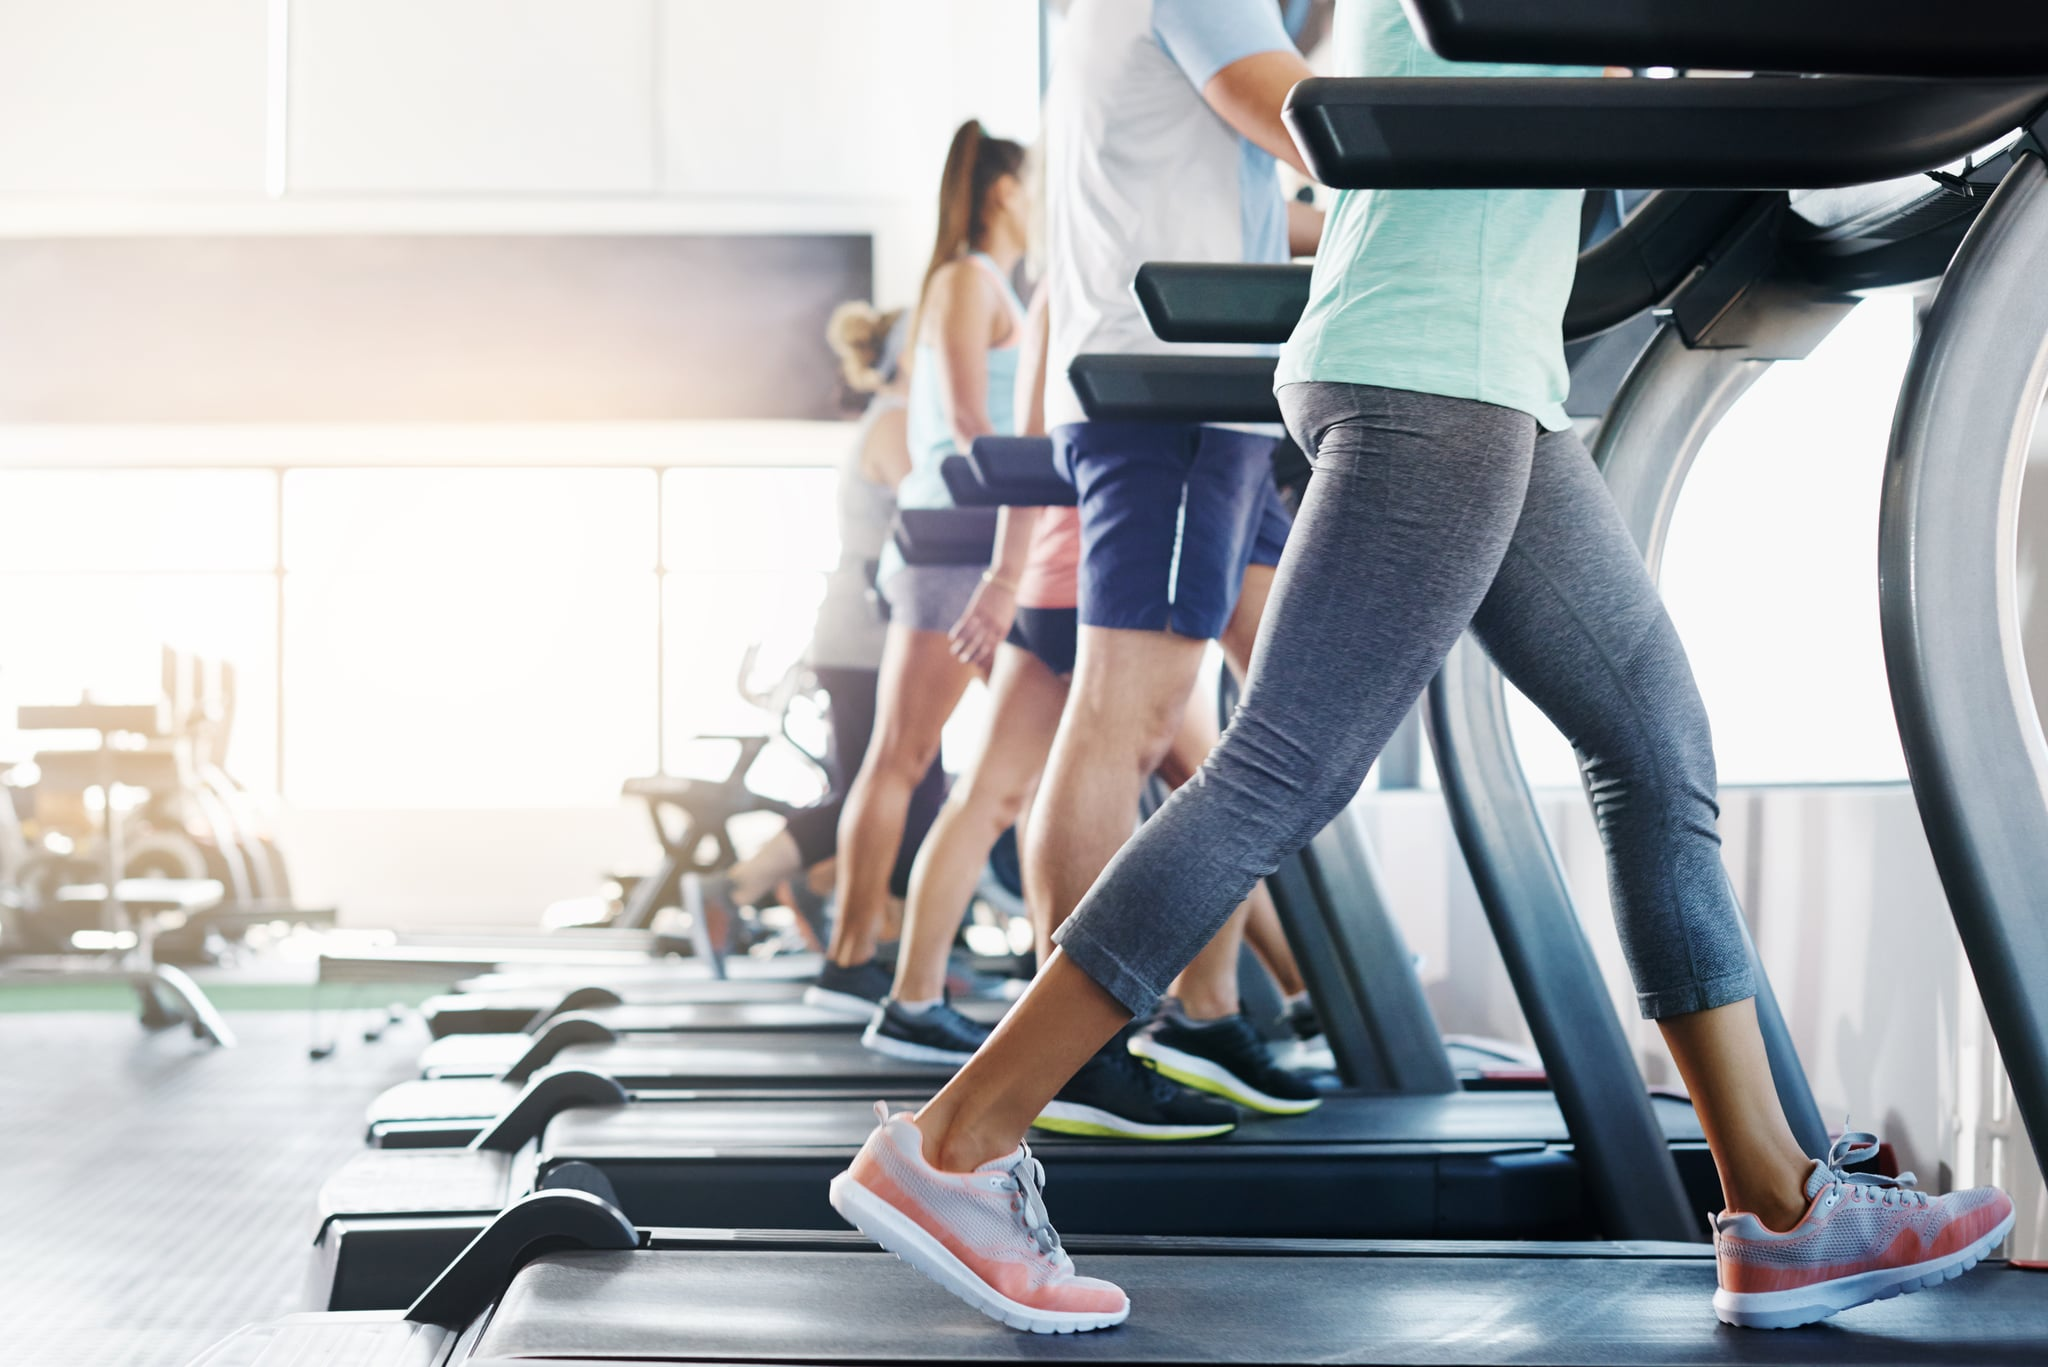 Too Cold to Walk Outside? Do This 20-Minute Calorie-Burning Treadmill Workout Instead